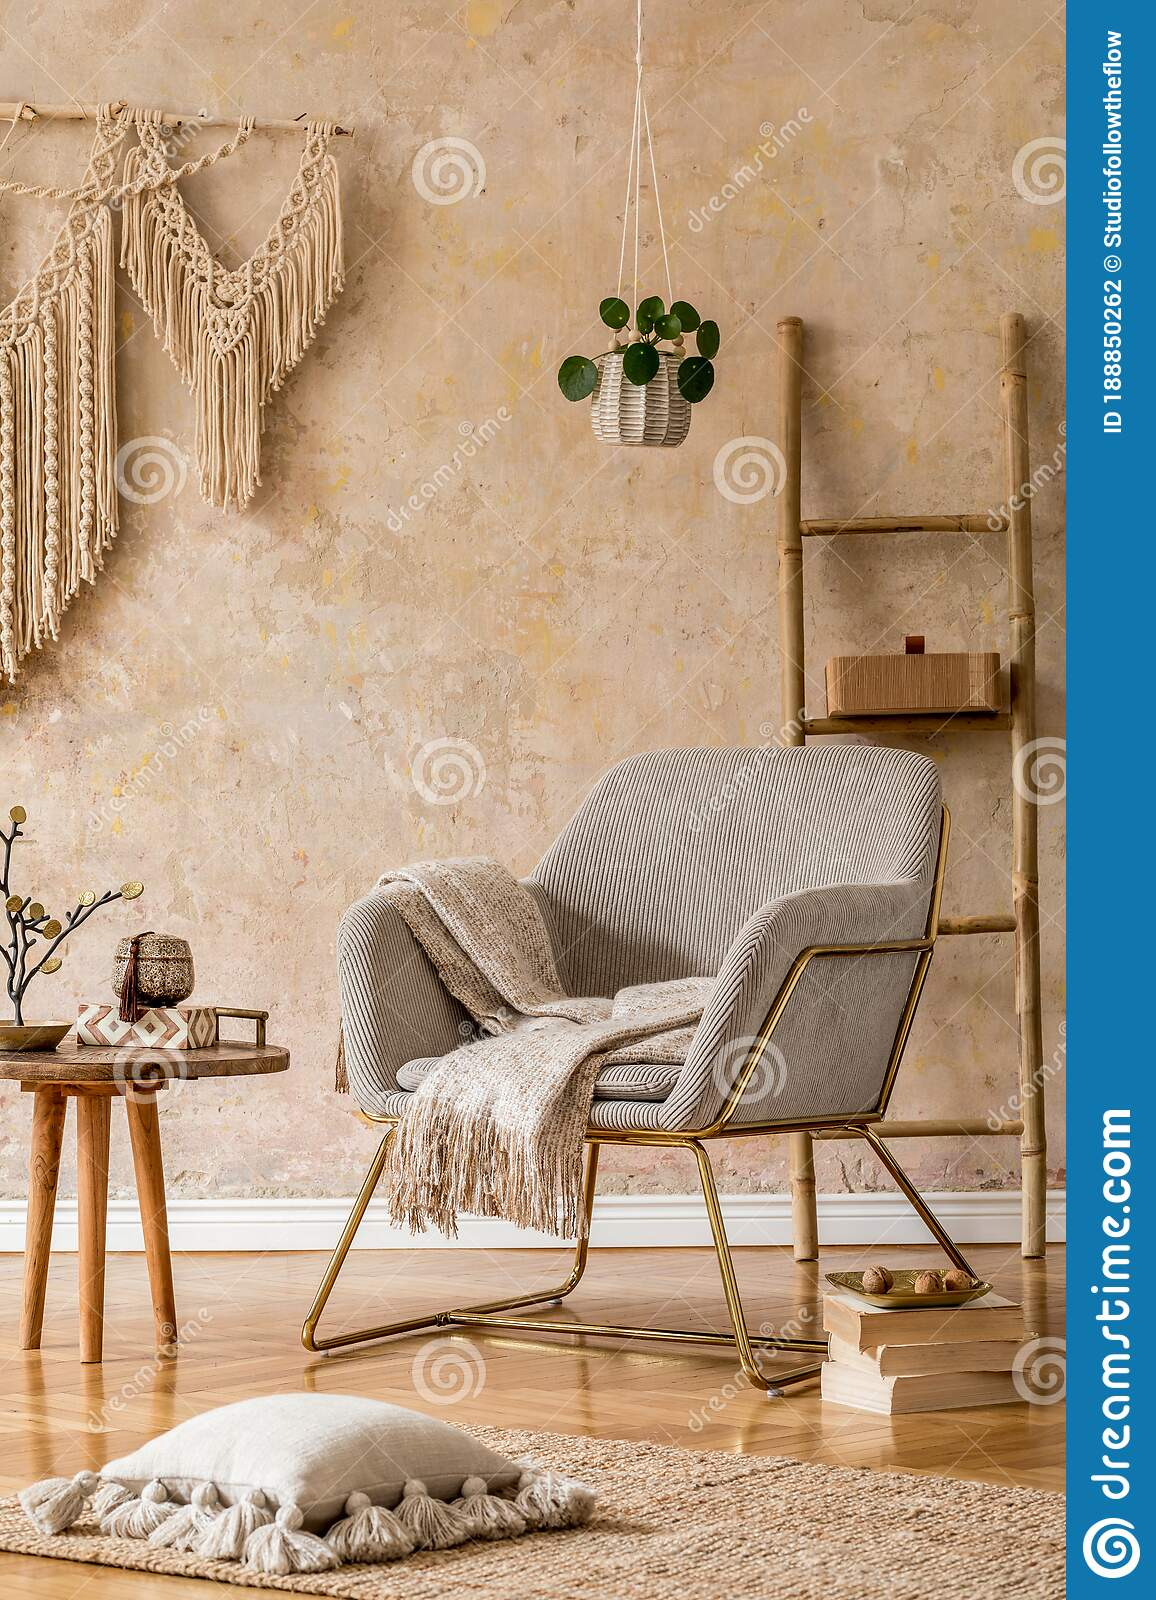 Interior Design Of Oriental Living Room With Modern Armchair Macrame Wooden Ladder Pillows Decorations And Elegant Decor Stock Photo Image Of Interior Chair 188850262